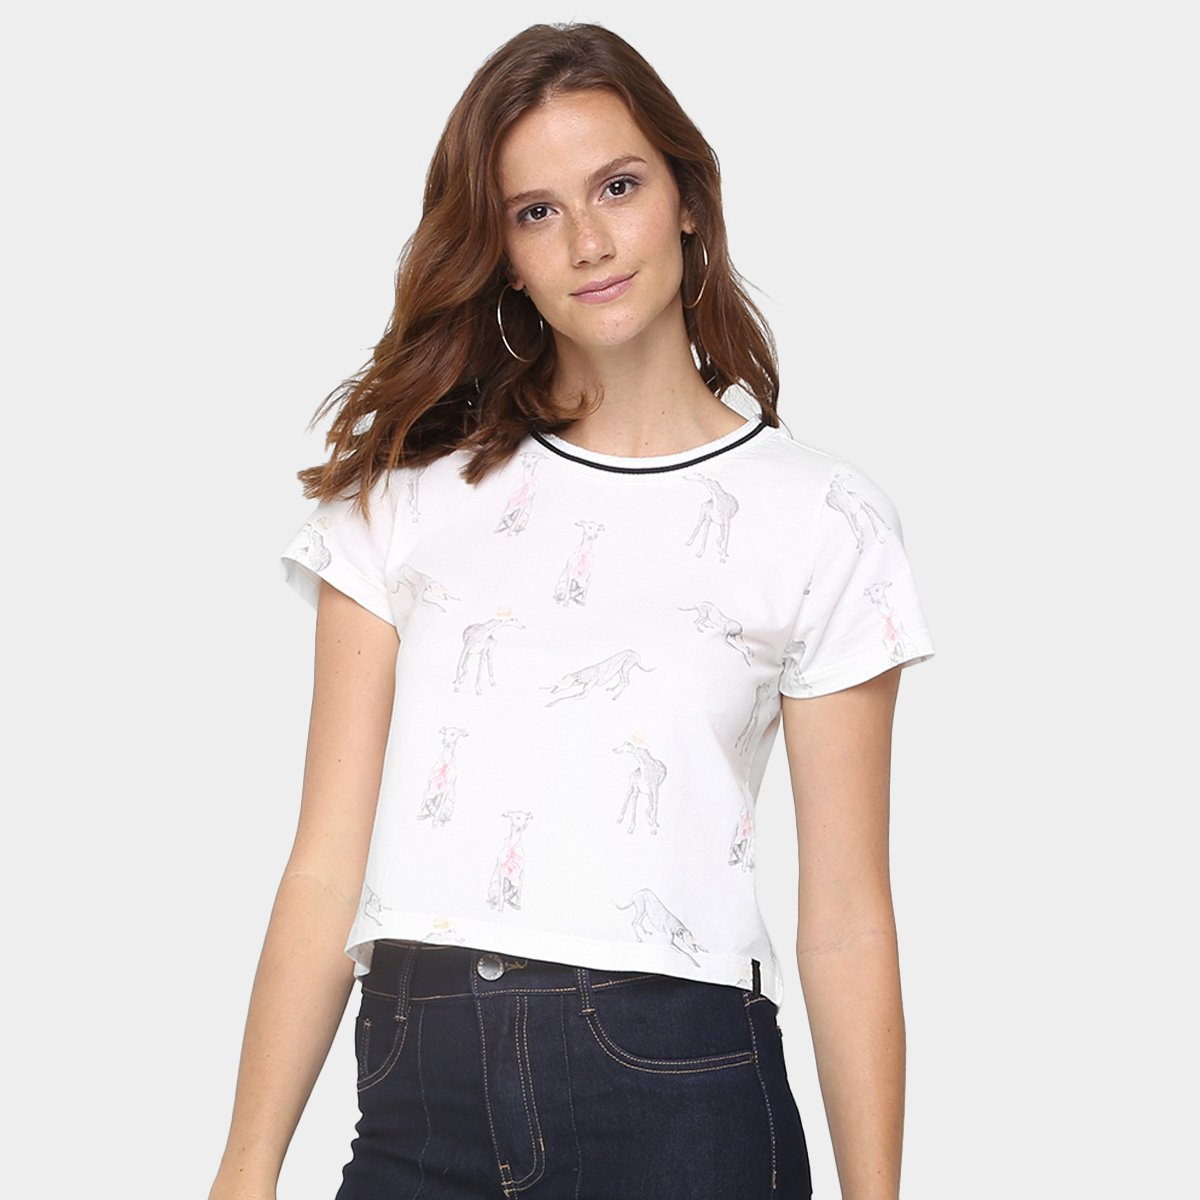 Cantão Cachorro Cantão Off Cropped Camiseta Cantão Camiseta Off White Camiseta Cropped White Cachorro gxqpI8w8